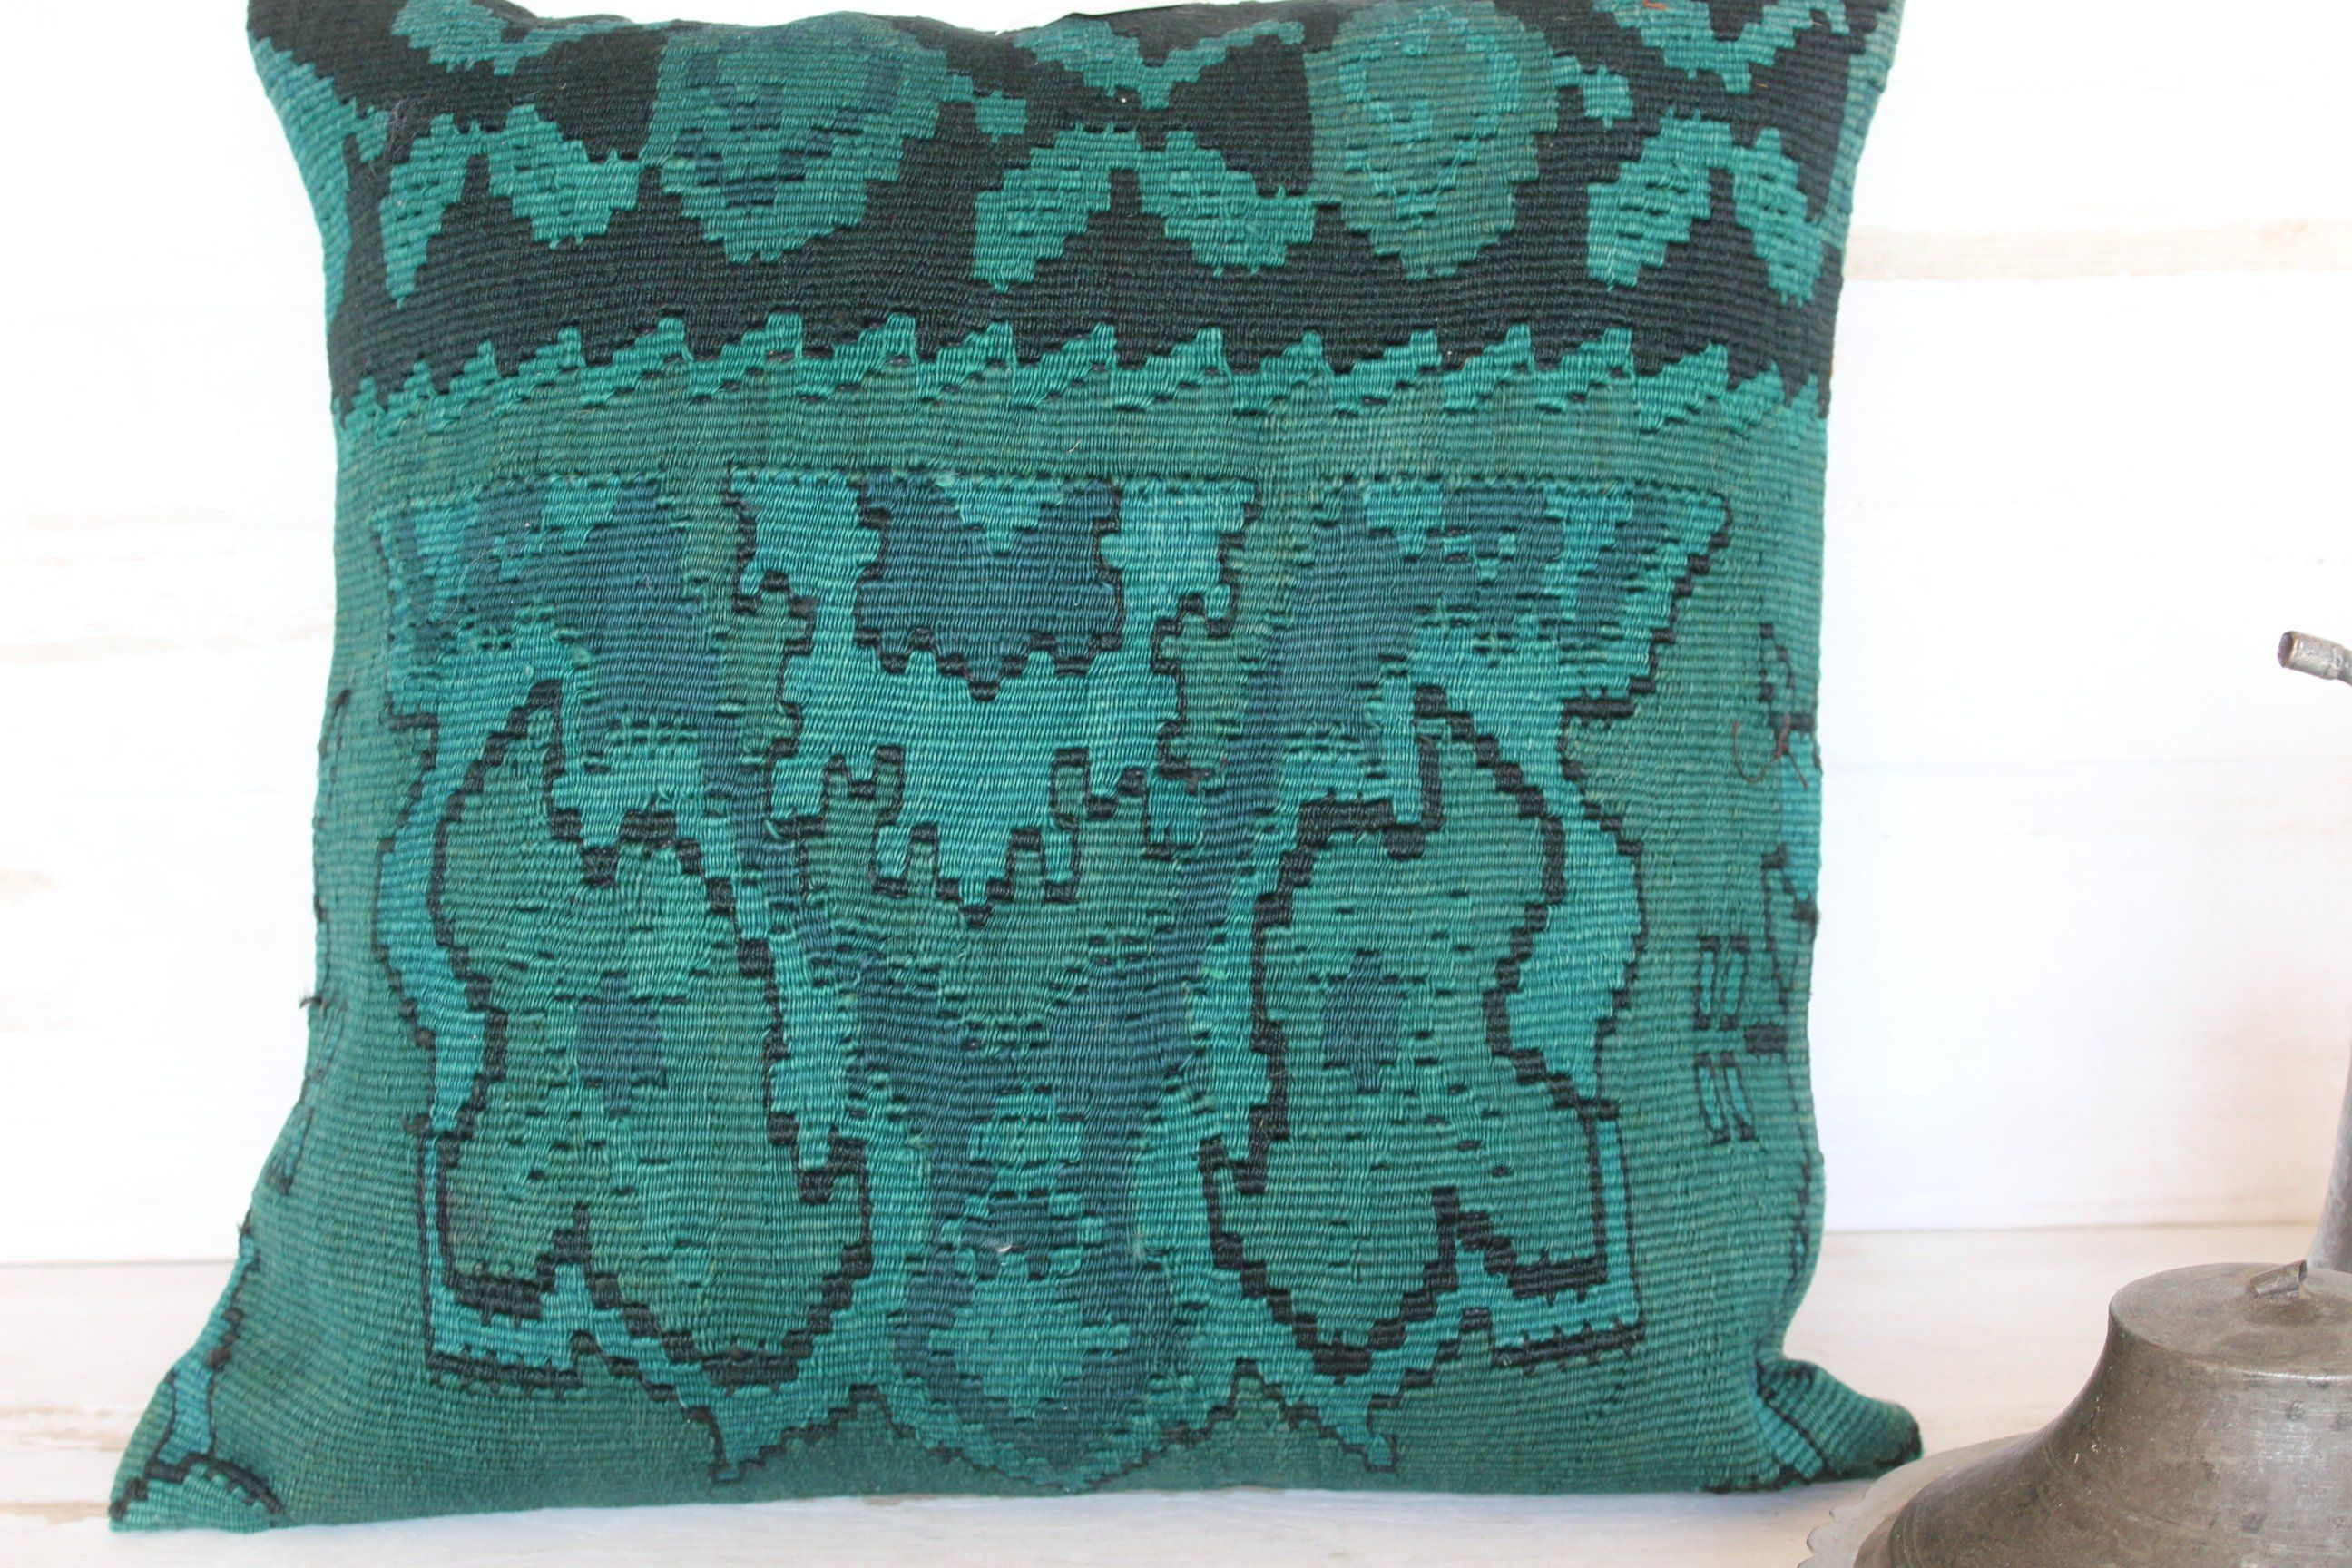 21x21 inch turquoise kilim pillow cover